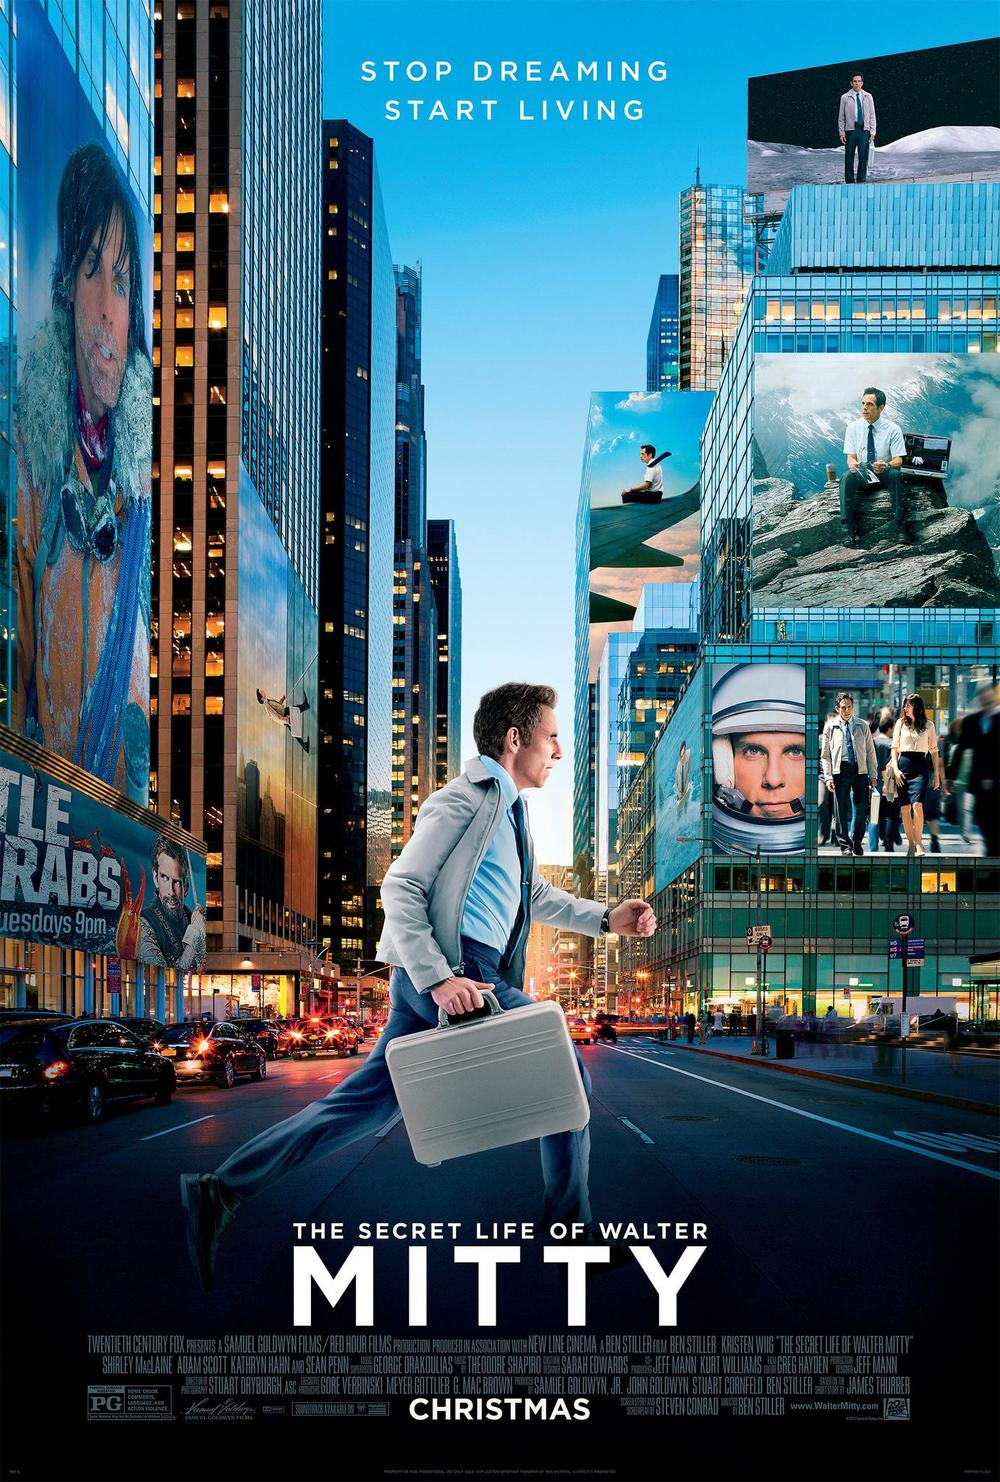 The Secret Life of Walter Mitty.  Visit Collaboration at jonevonfurs.com